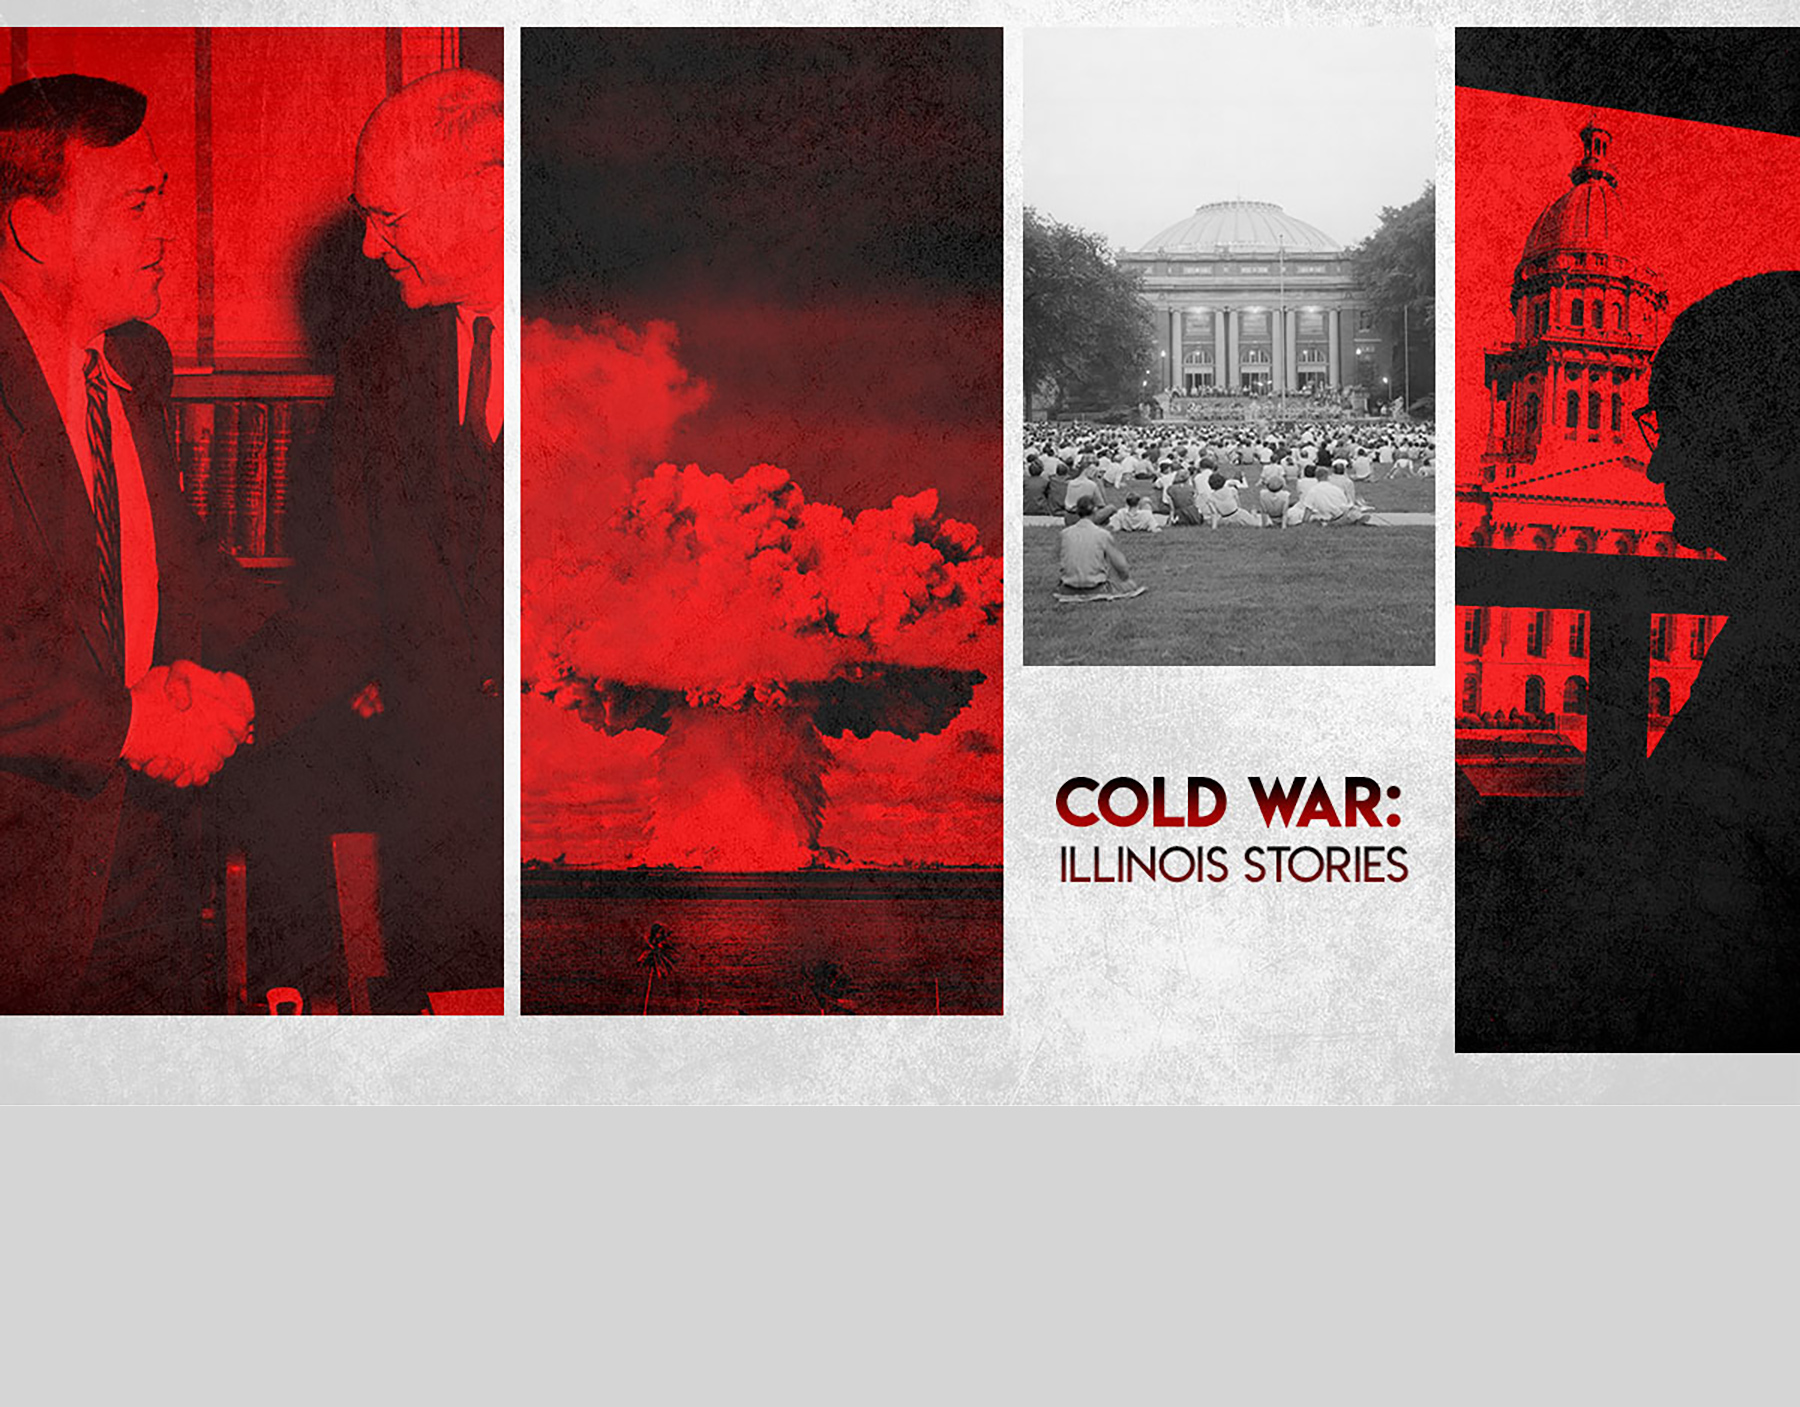 """The Cold War's presence on American universities would have many lasting effects, including the four episodes featured in the new documentary """"Cold War: Illinois Stories.""""  Graphic by Kaitlin Southworth"""